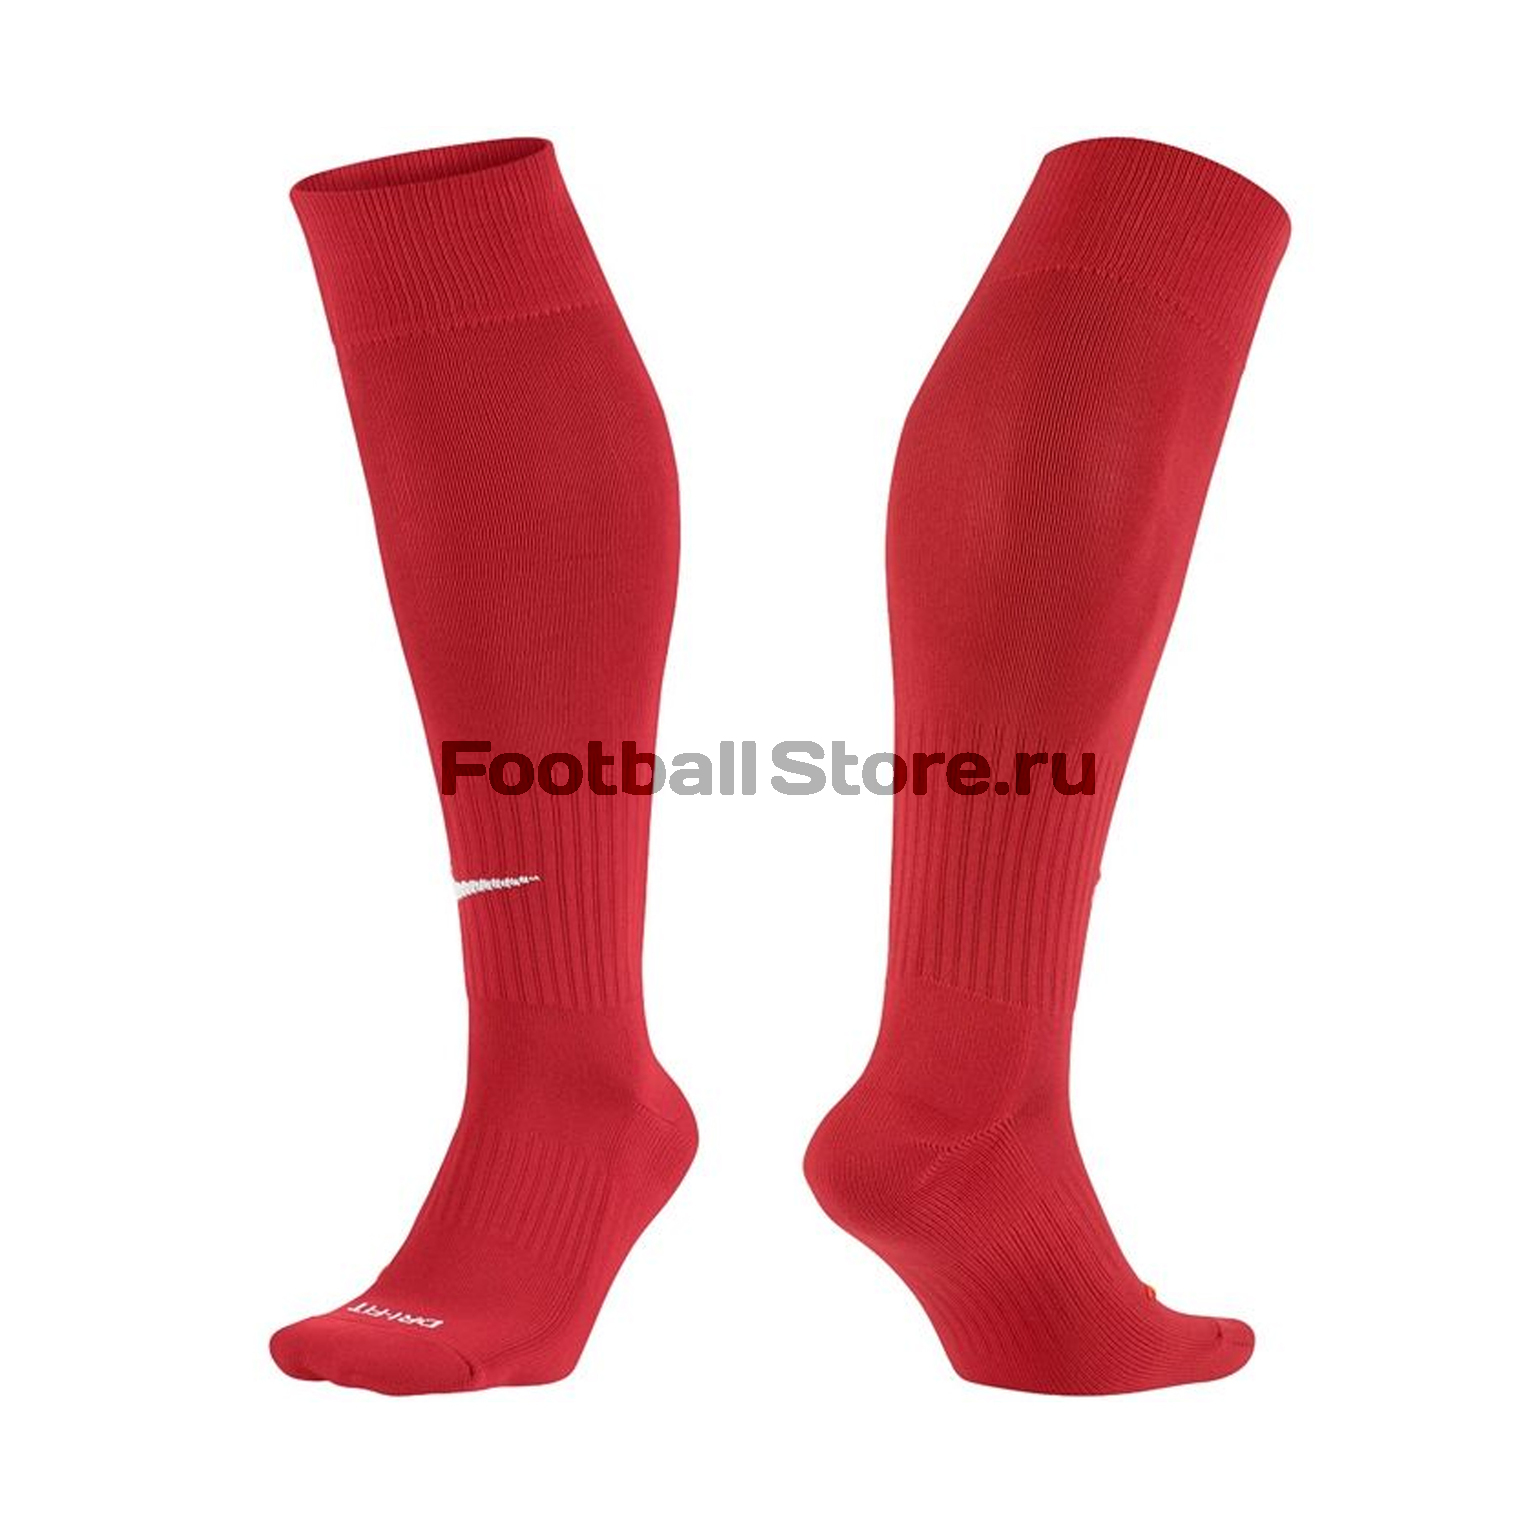 Гетры Nike Classic Football Fit-Dri SX4120-601 nike гетры nike classic ii sock 394386 670